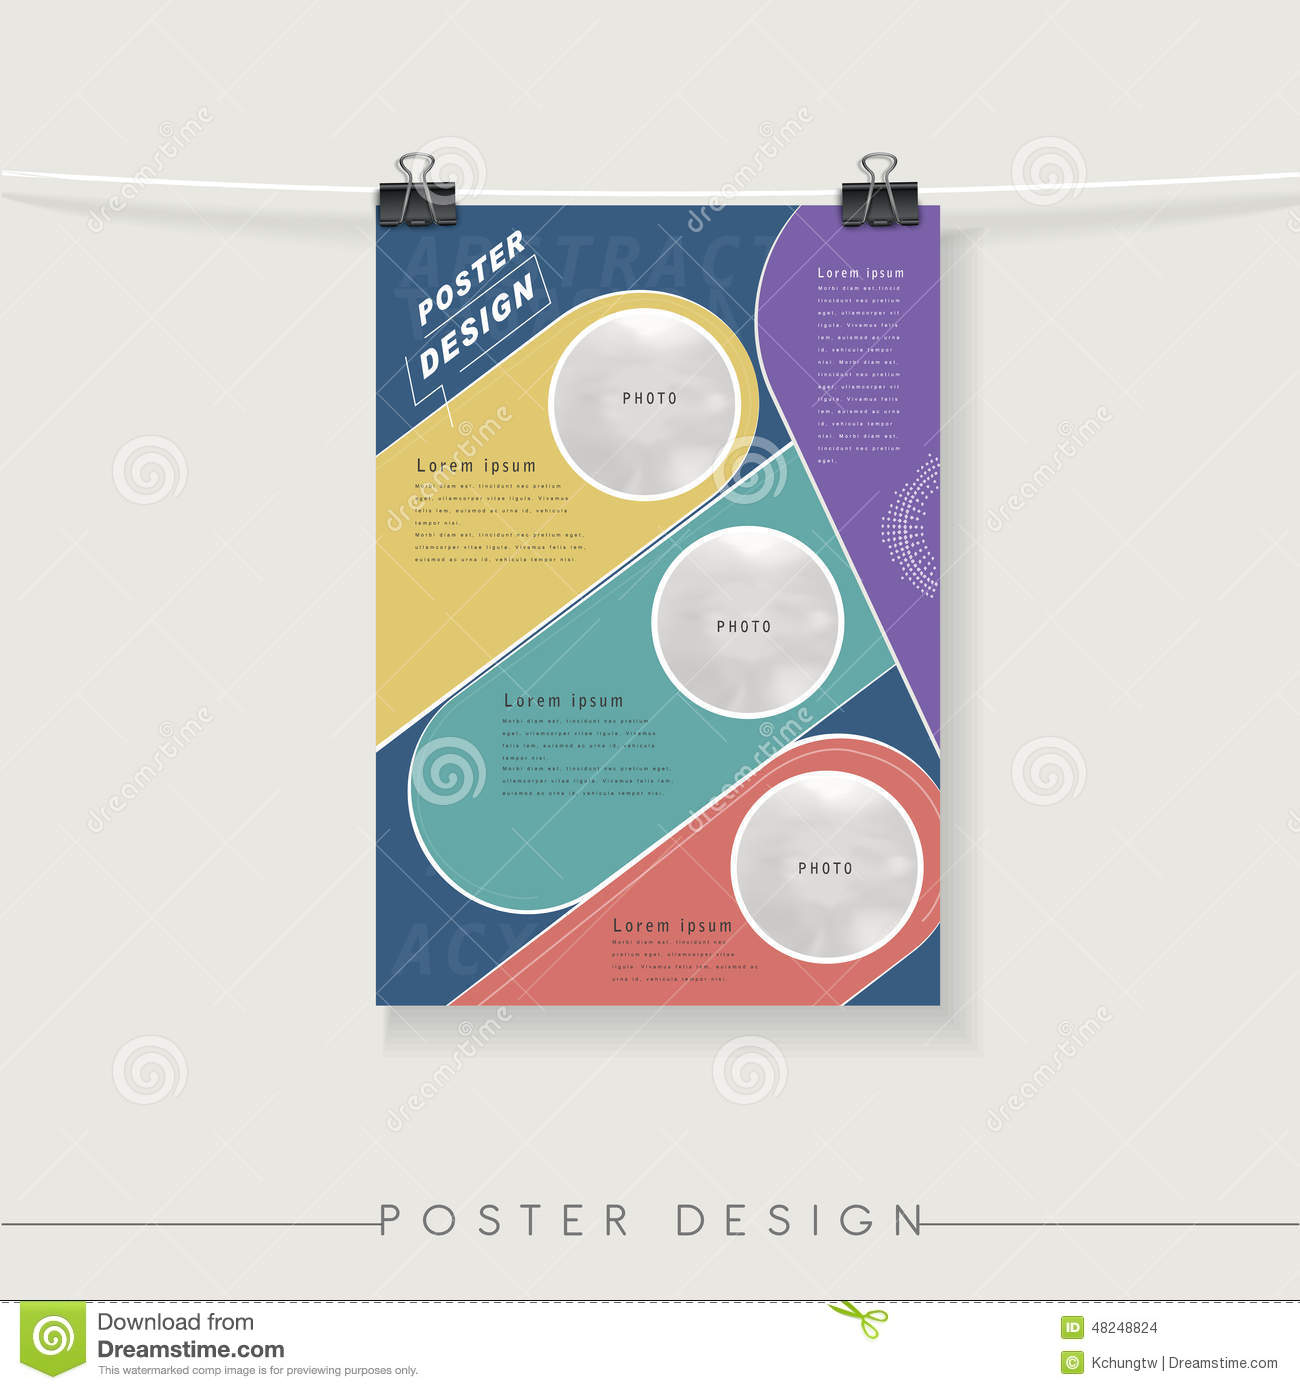 How To Design A Poster Online For Free